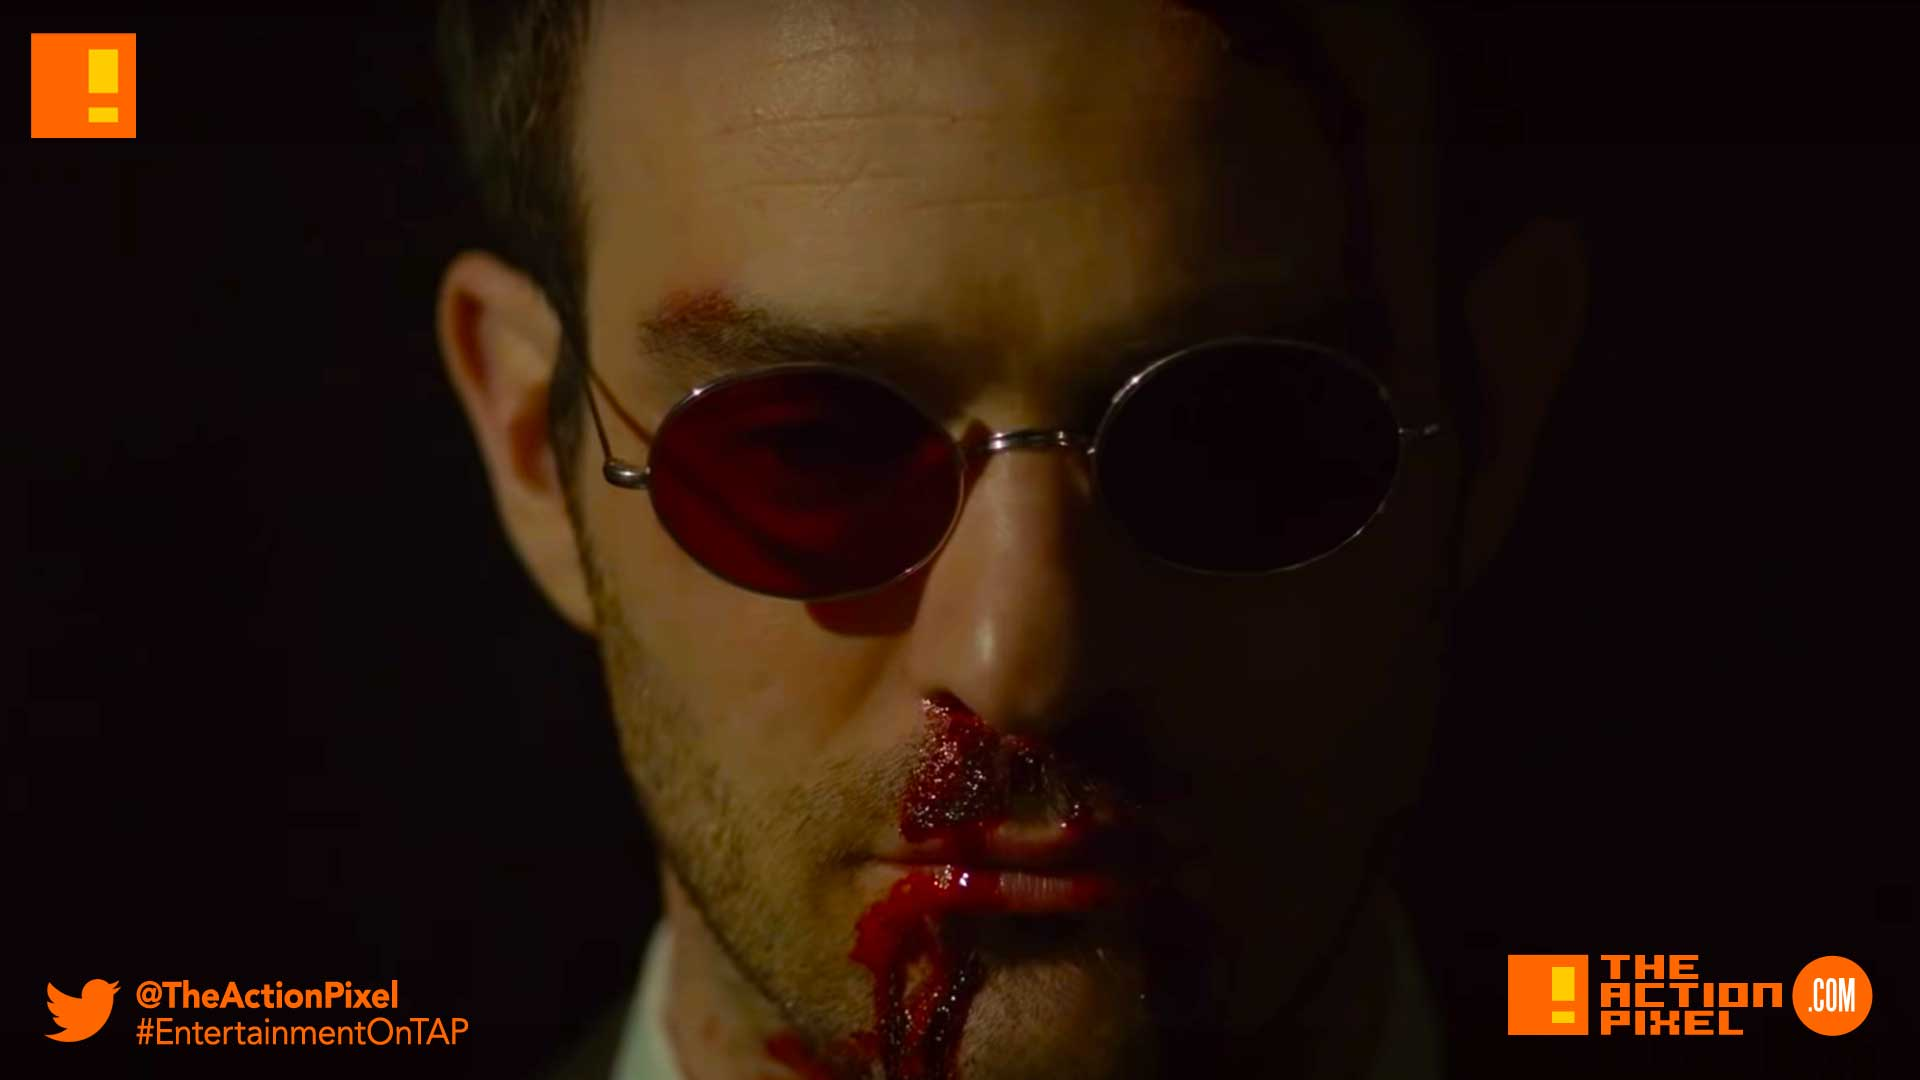 daredevil, season 3, date announcement,dardevil season 3, daredevil, charlie cox, matt murdock, teaser, catholic church, confessional, priest, abuse, child abuse, church, confession booth, teaser, daredevil, netflix, marvel comics, marvel,